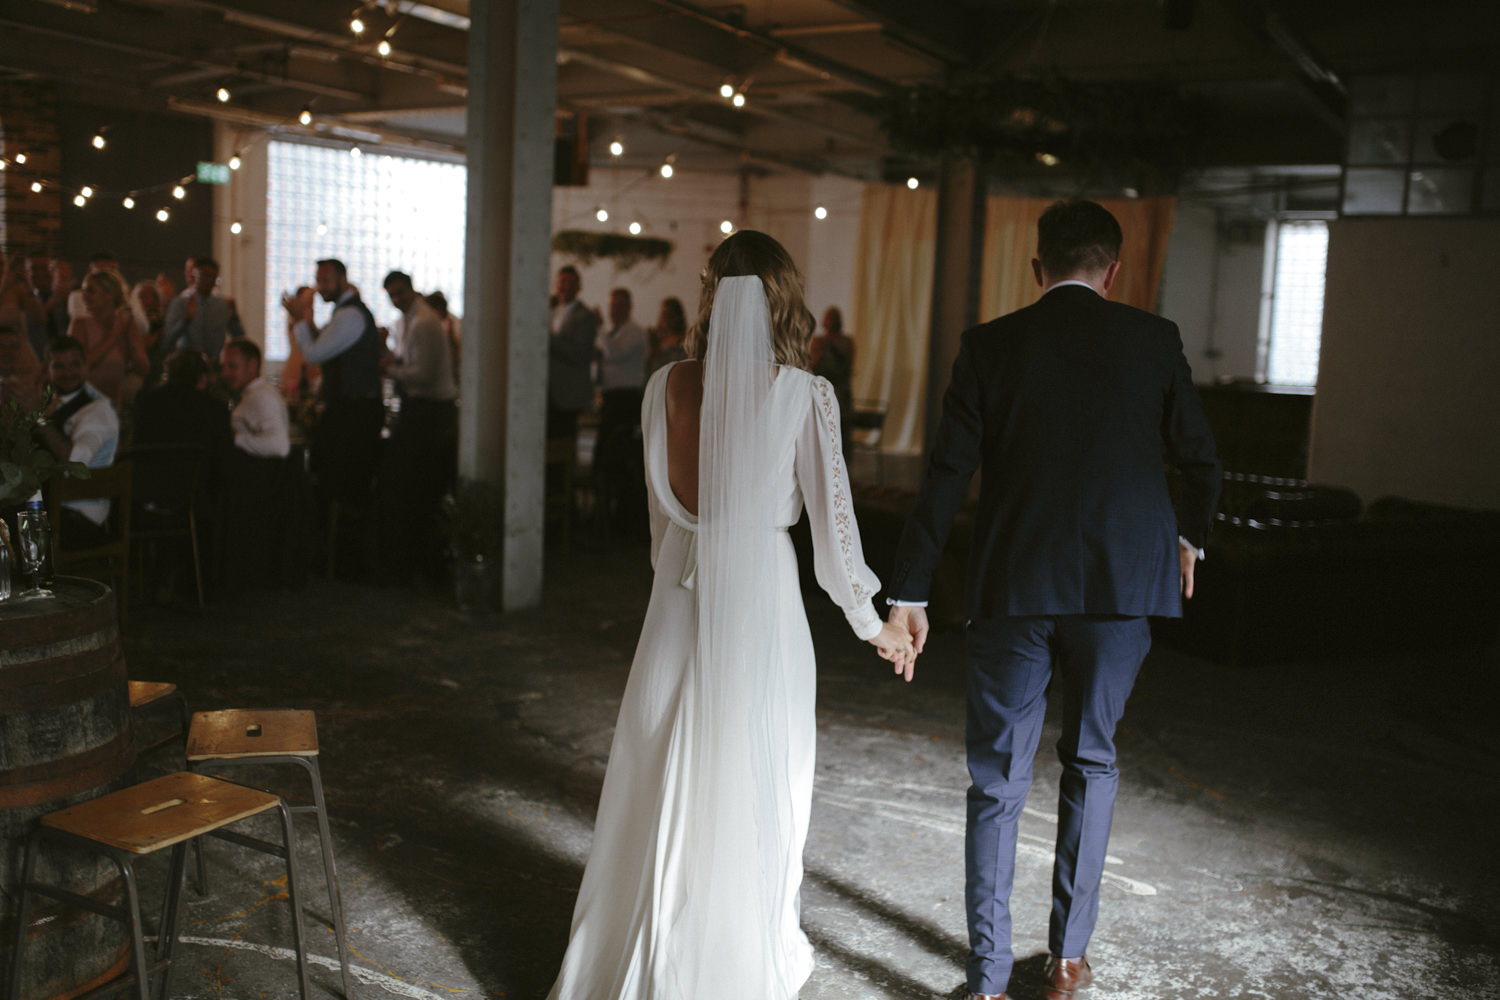 trafalgar-warehouse-sheffield-wedding-84.jpg